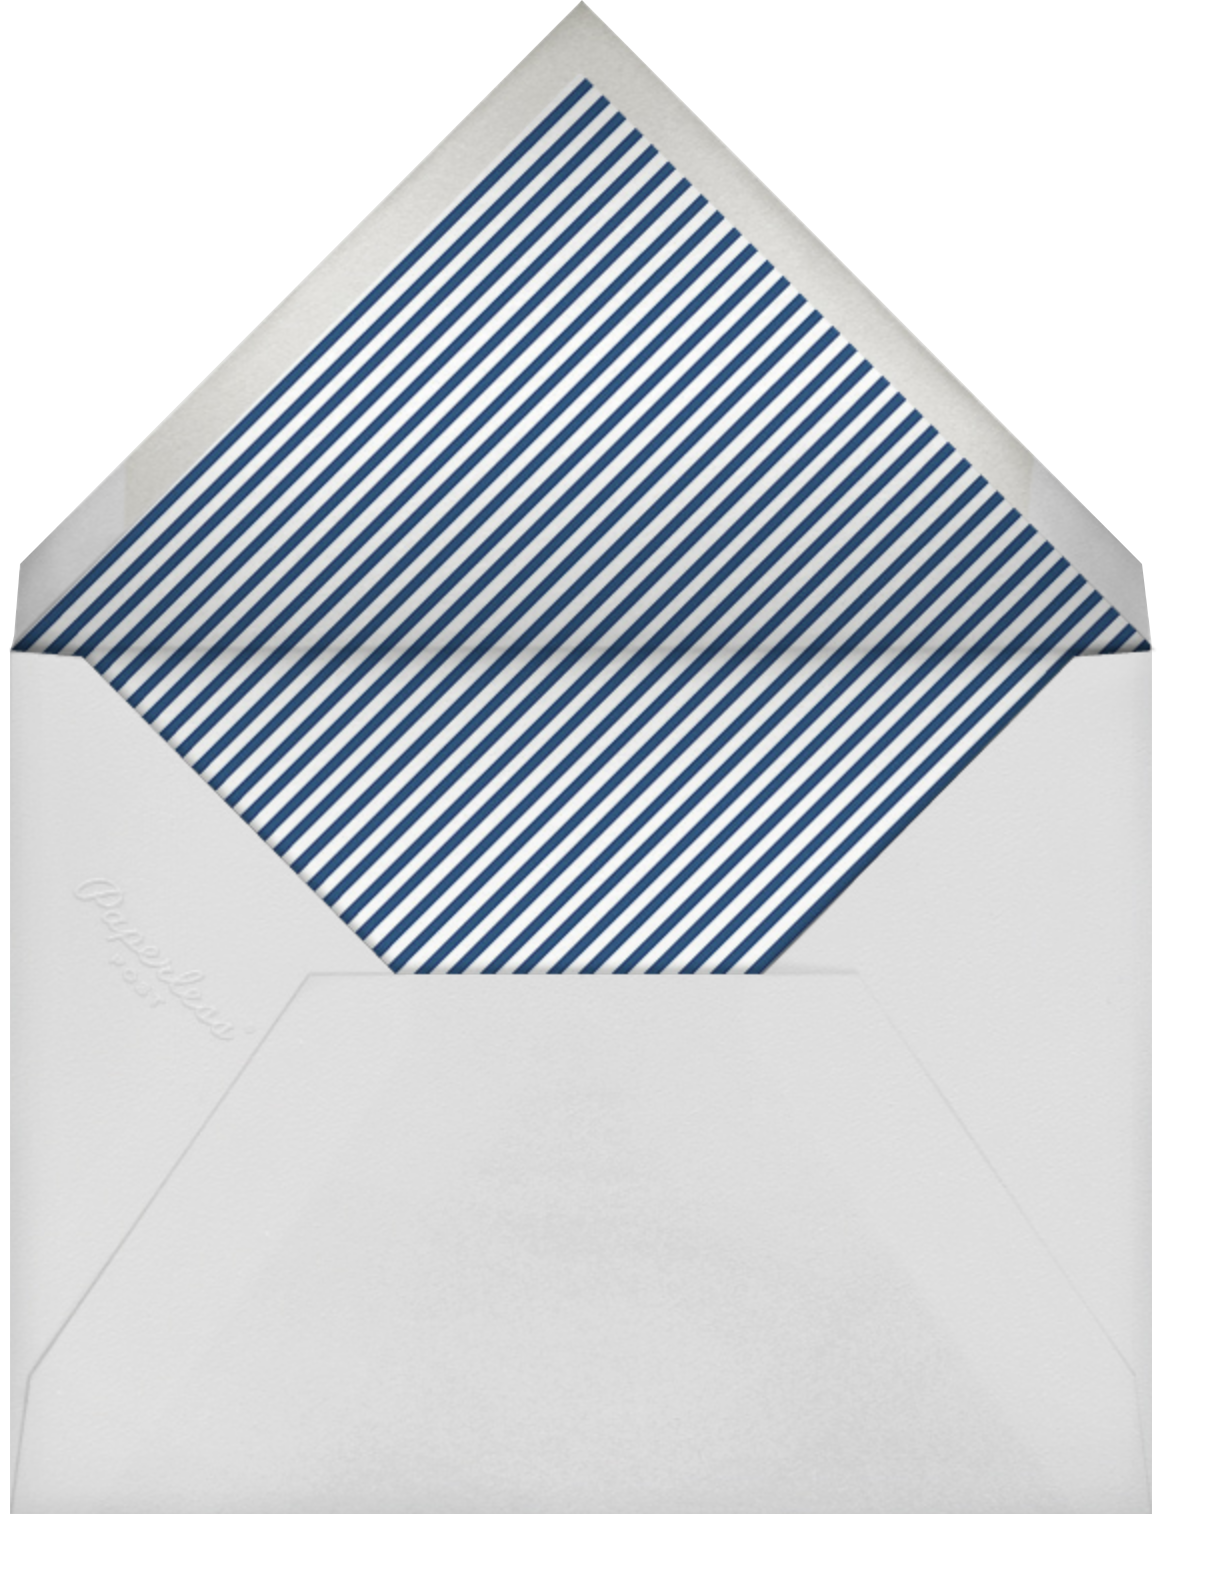 Mille Feuille - Dark Blue - Paperless Post - All - envelope back